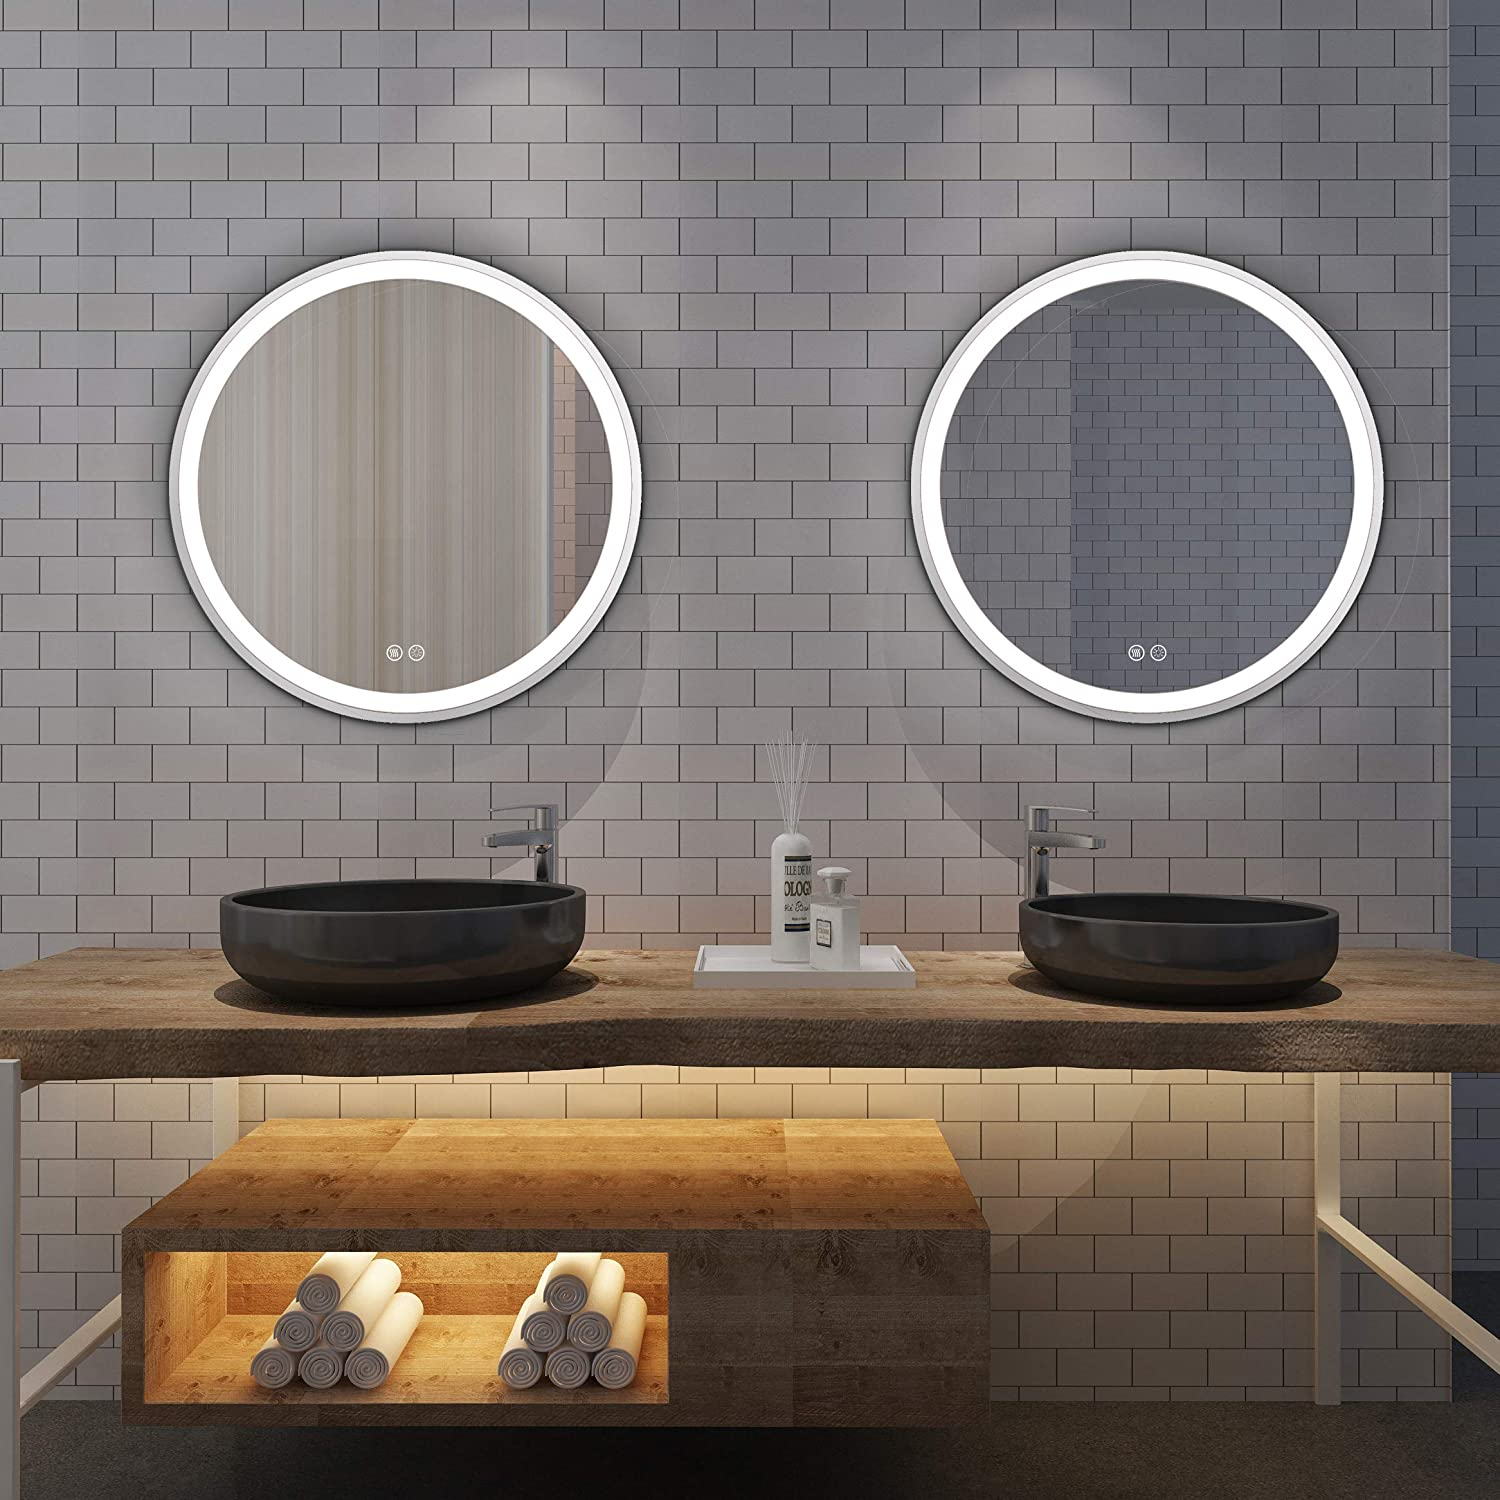 Buy Istripmf Led Bathroom Mirror 24 Inch Round Bathroom Vanity Mirror Anti Fog Backlit Mirror Circle With Dimmable Memory Touch Button 3 Color Adjustable Lighted Bathroom Mirror Silver Framed Online In Taiwan B08dhql94v